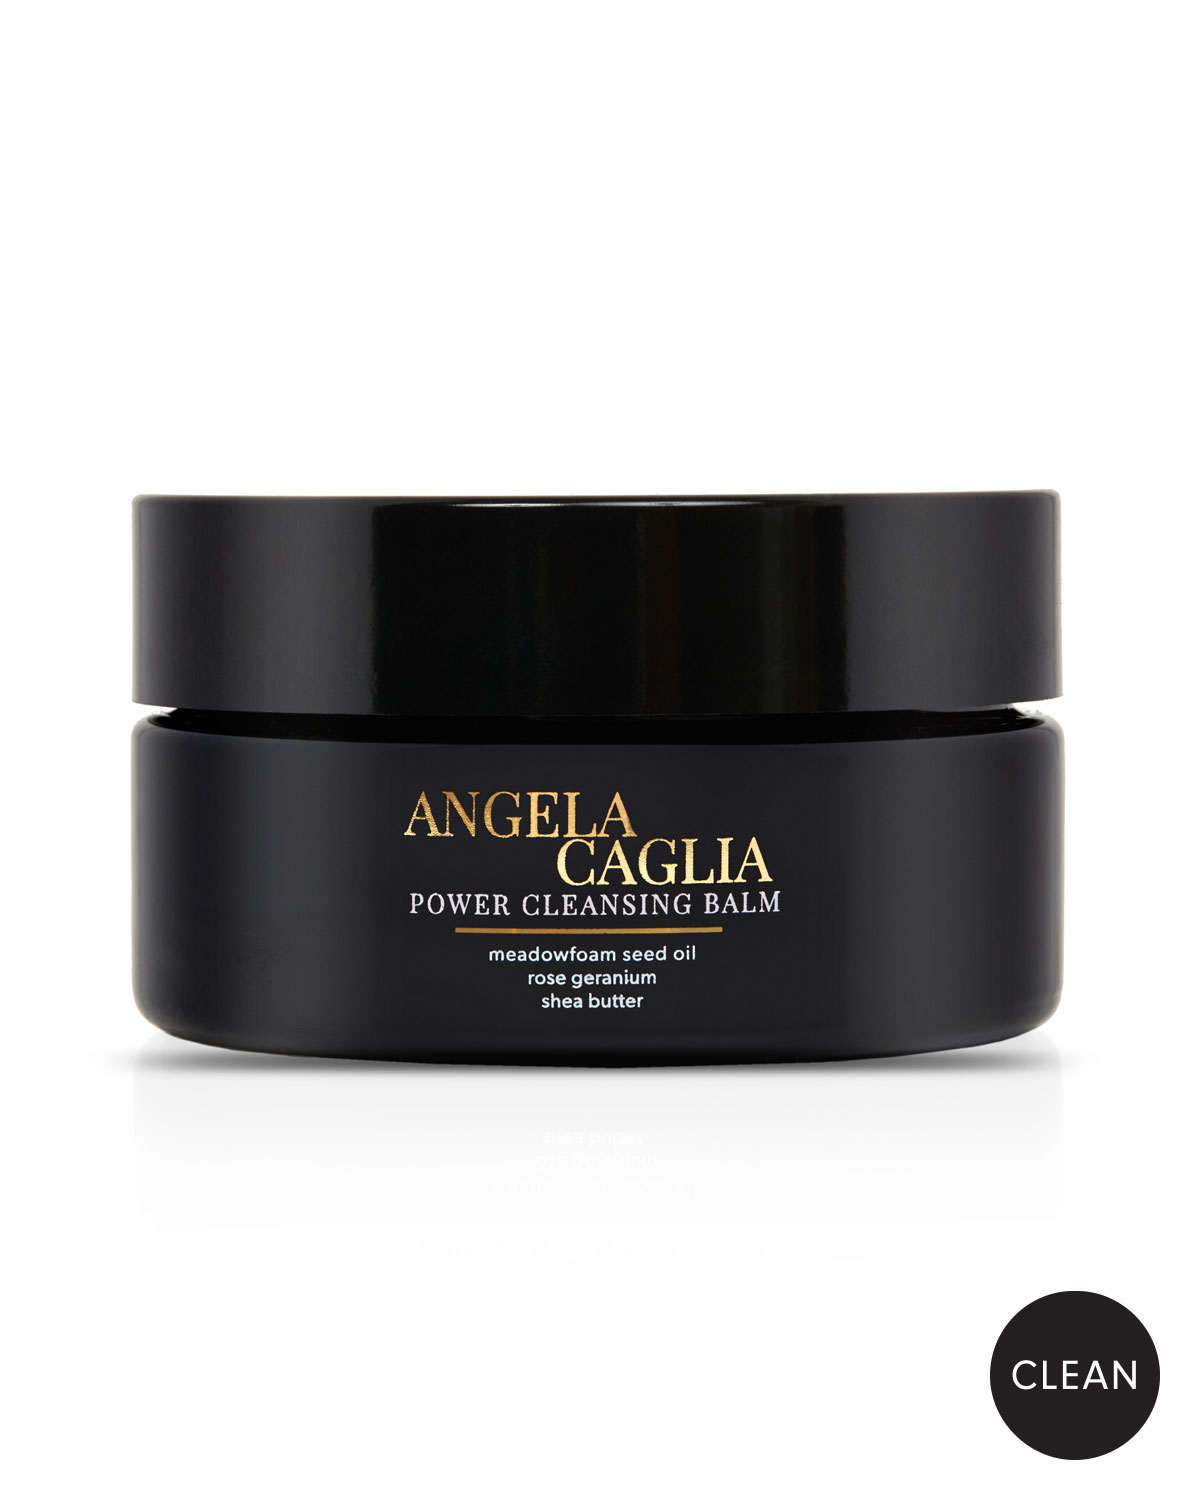 ANGELA CAGLIA SKINCARE Power Cleansing Balm, 3.4 Oz./ 100 Ml